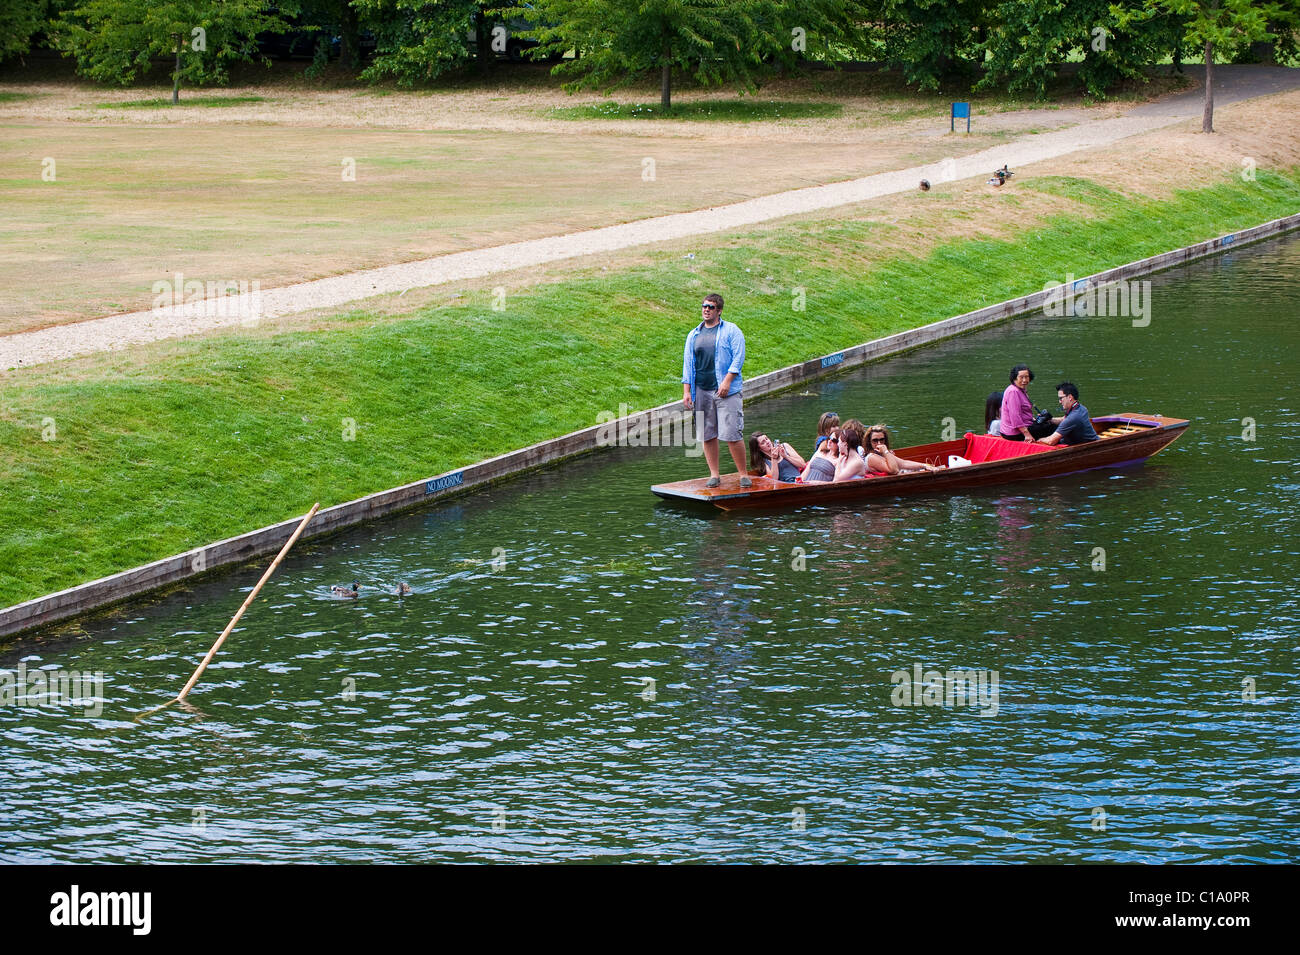 A punter loses his pole on The Backs in Cambridge - Stock Image